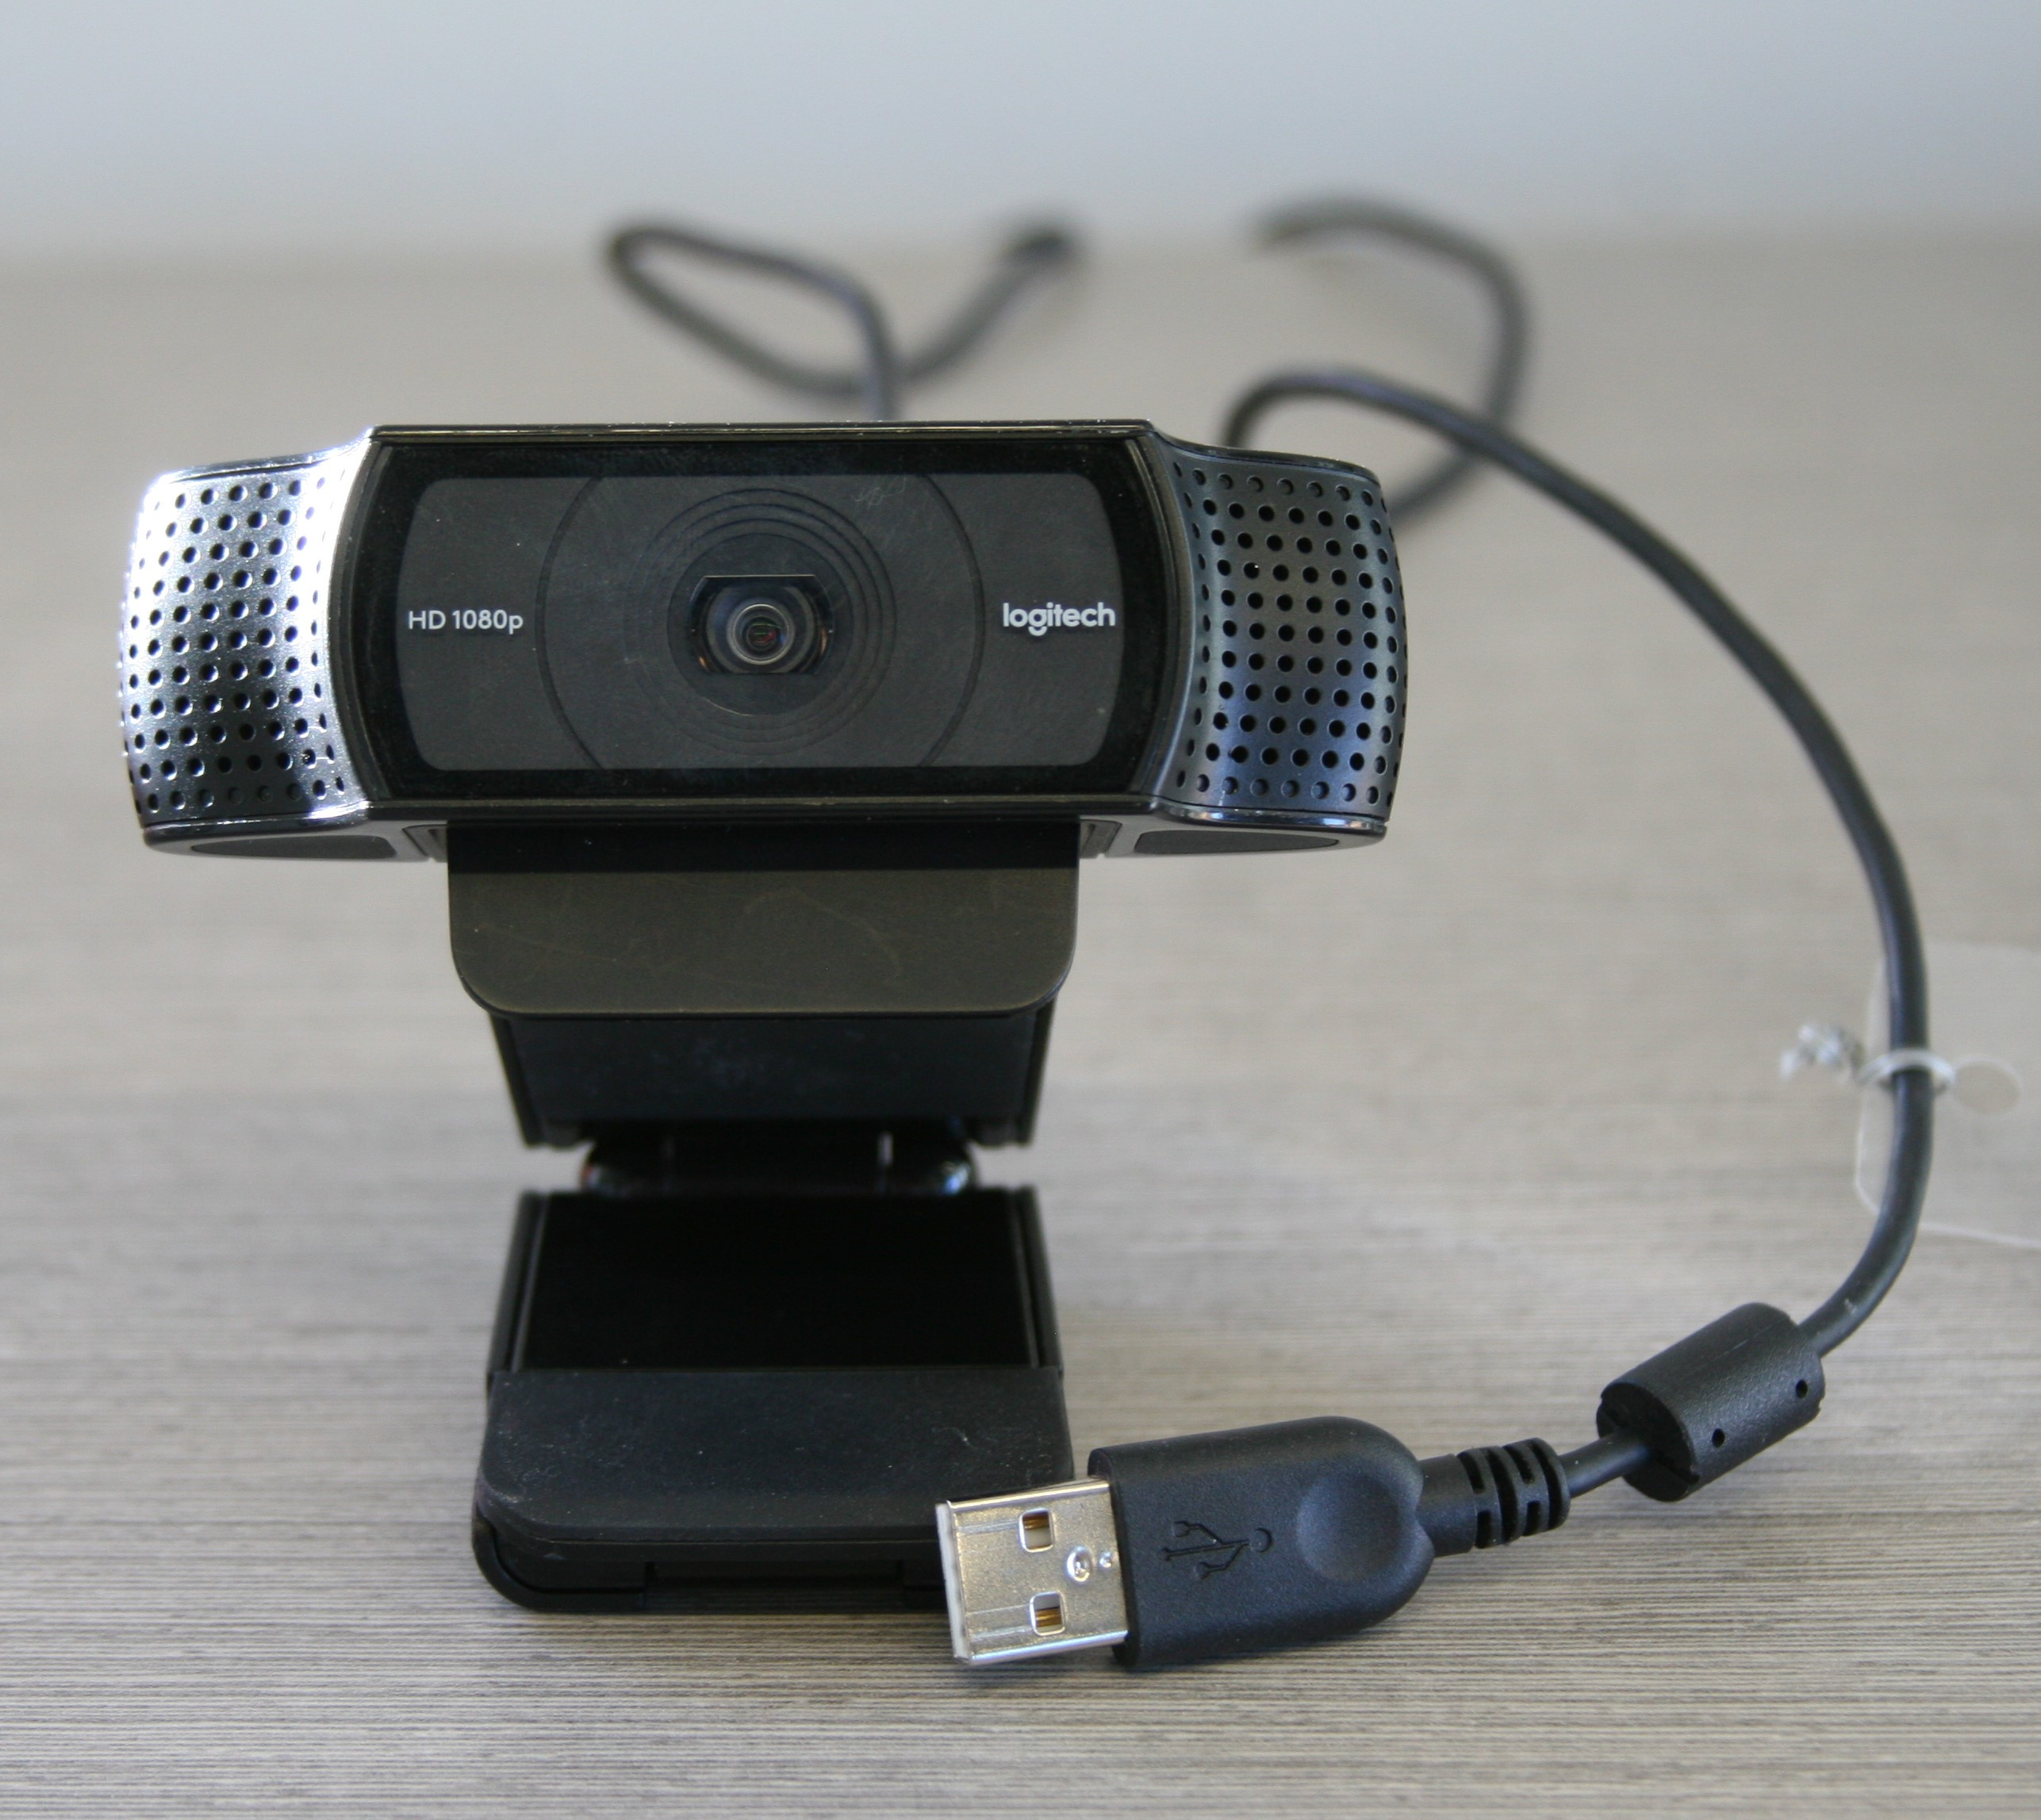 Logitech (3.0) Webcam